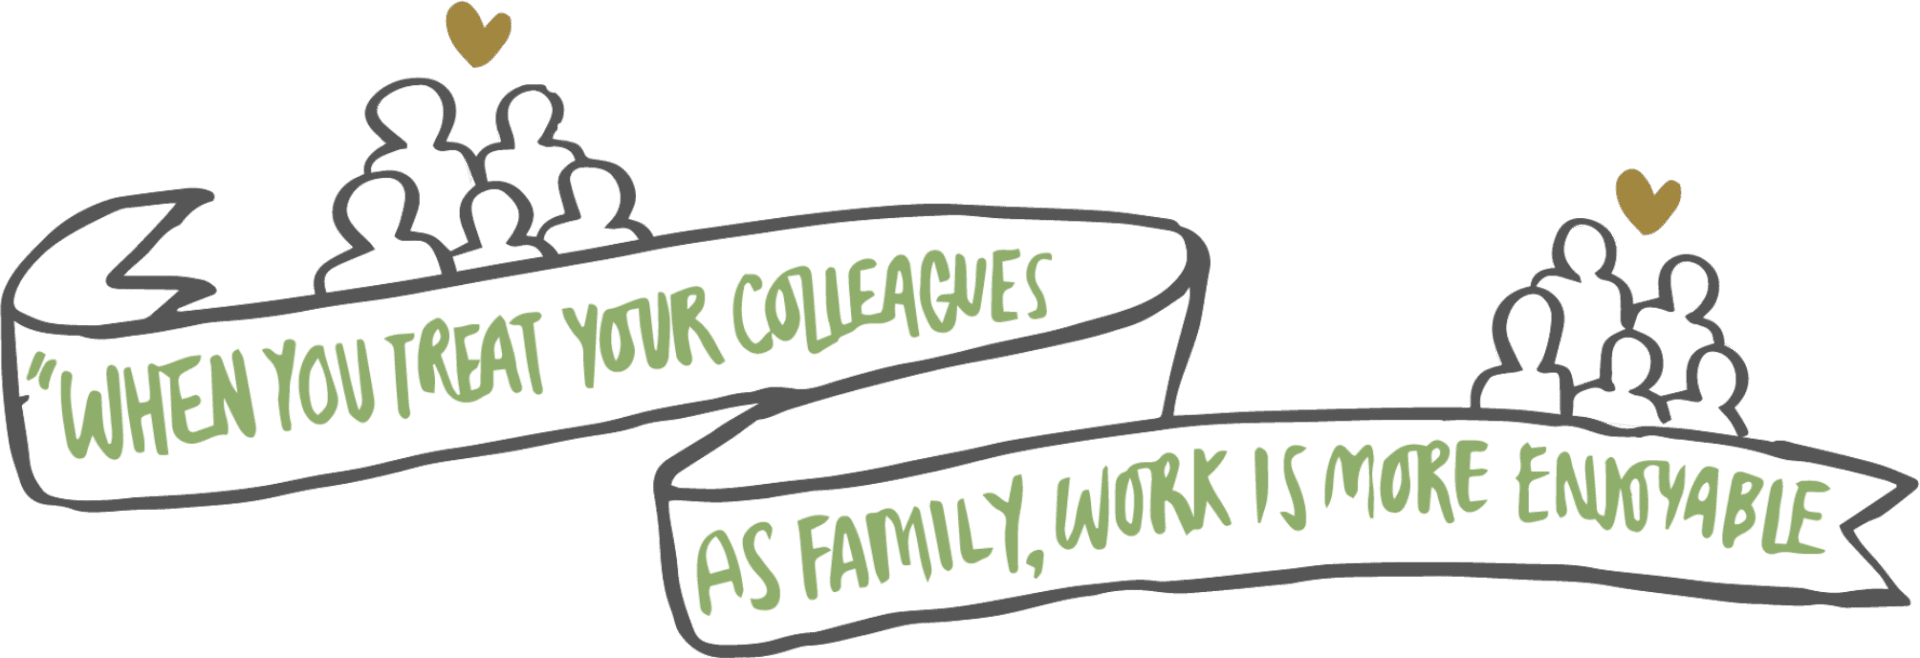 When you treat your colleagues as family, work is more enjoyable